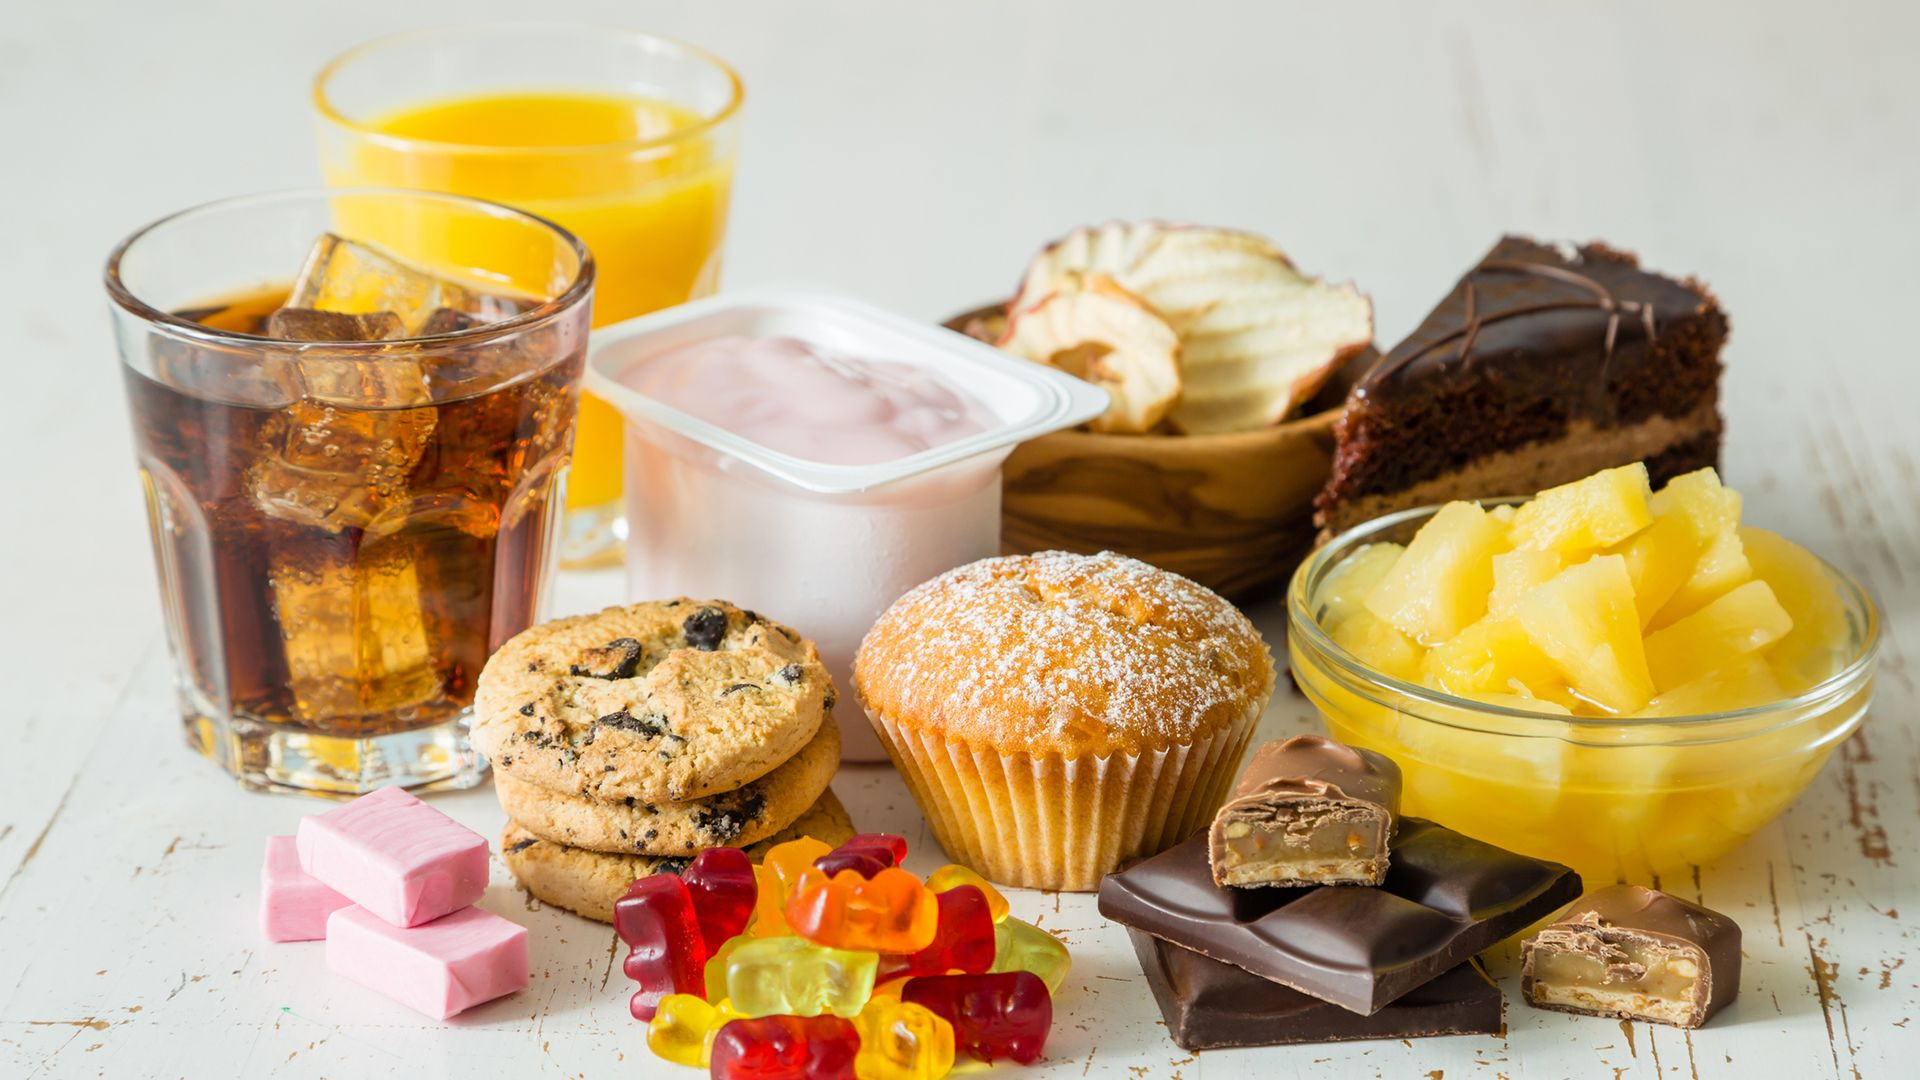 10 Worst Foods for Your Blood Sugar